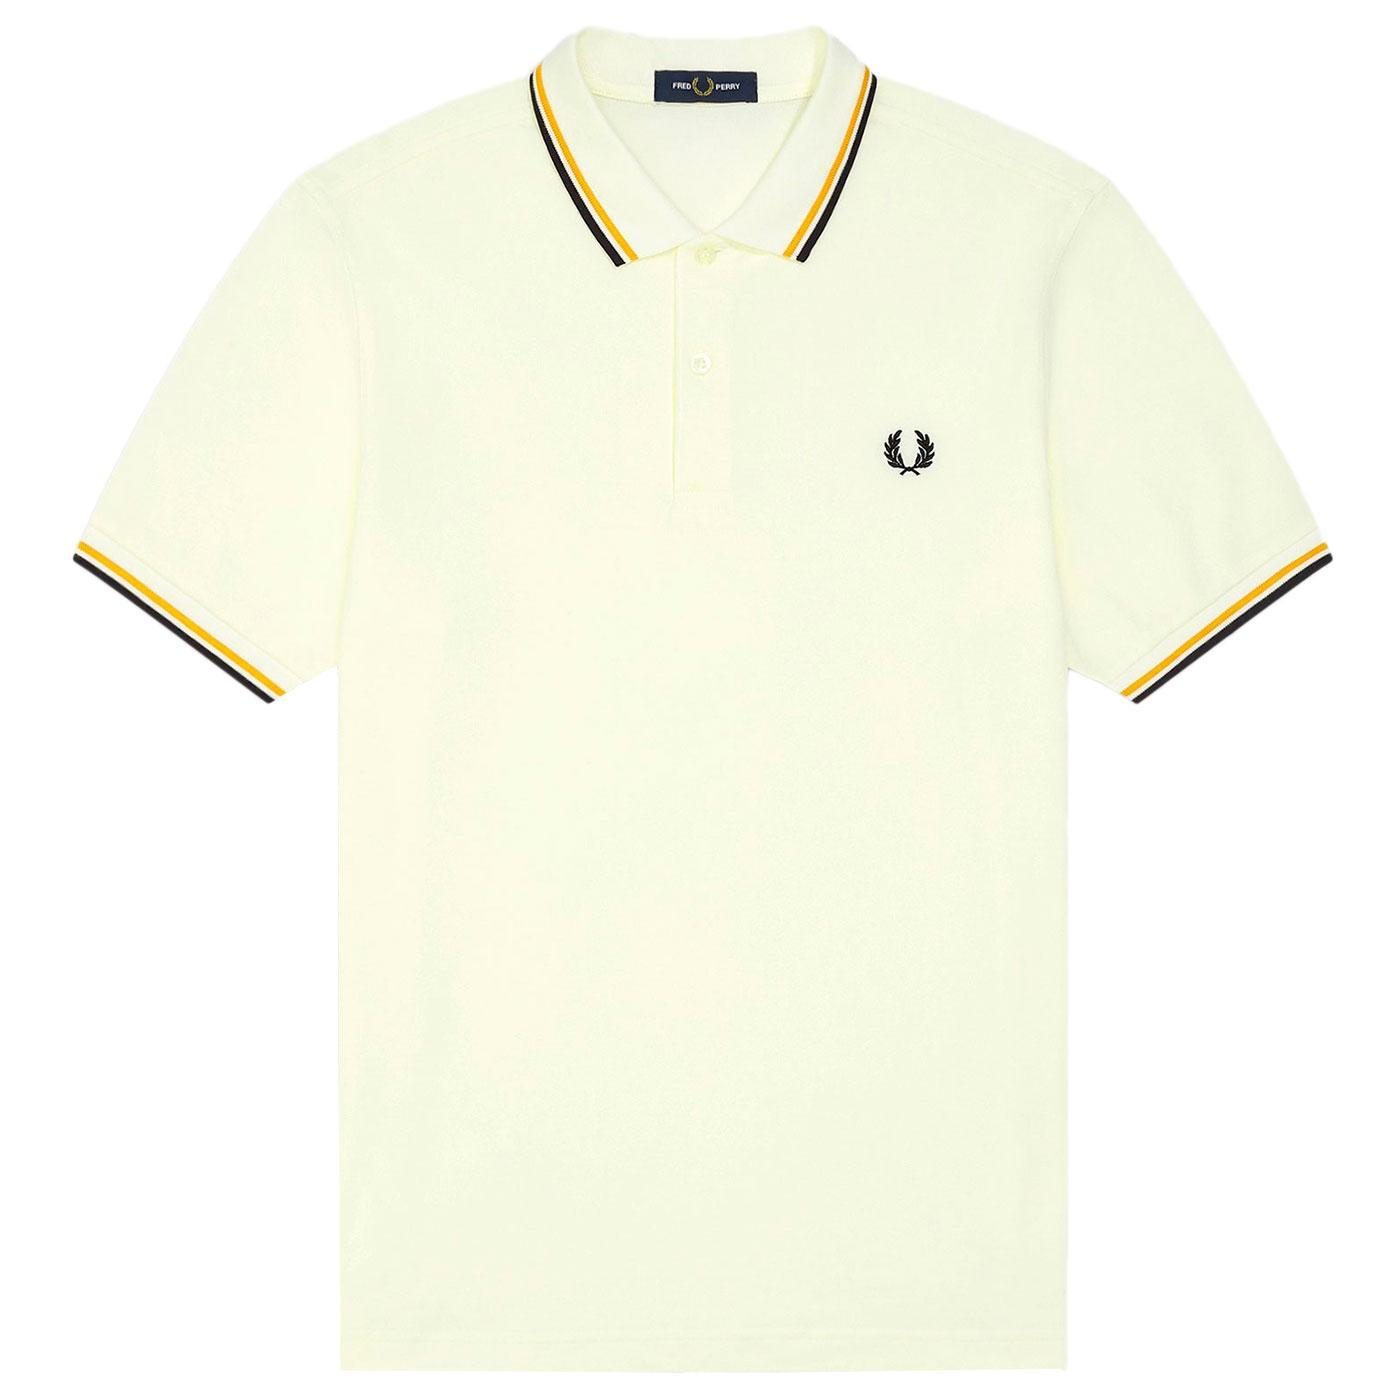 FRED PERRY M3600 Mod Twin Tipped Polo Shirt S/G/B